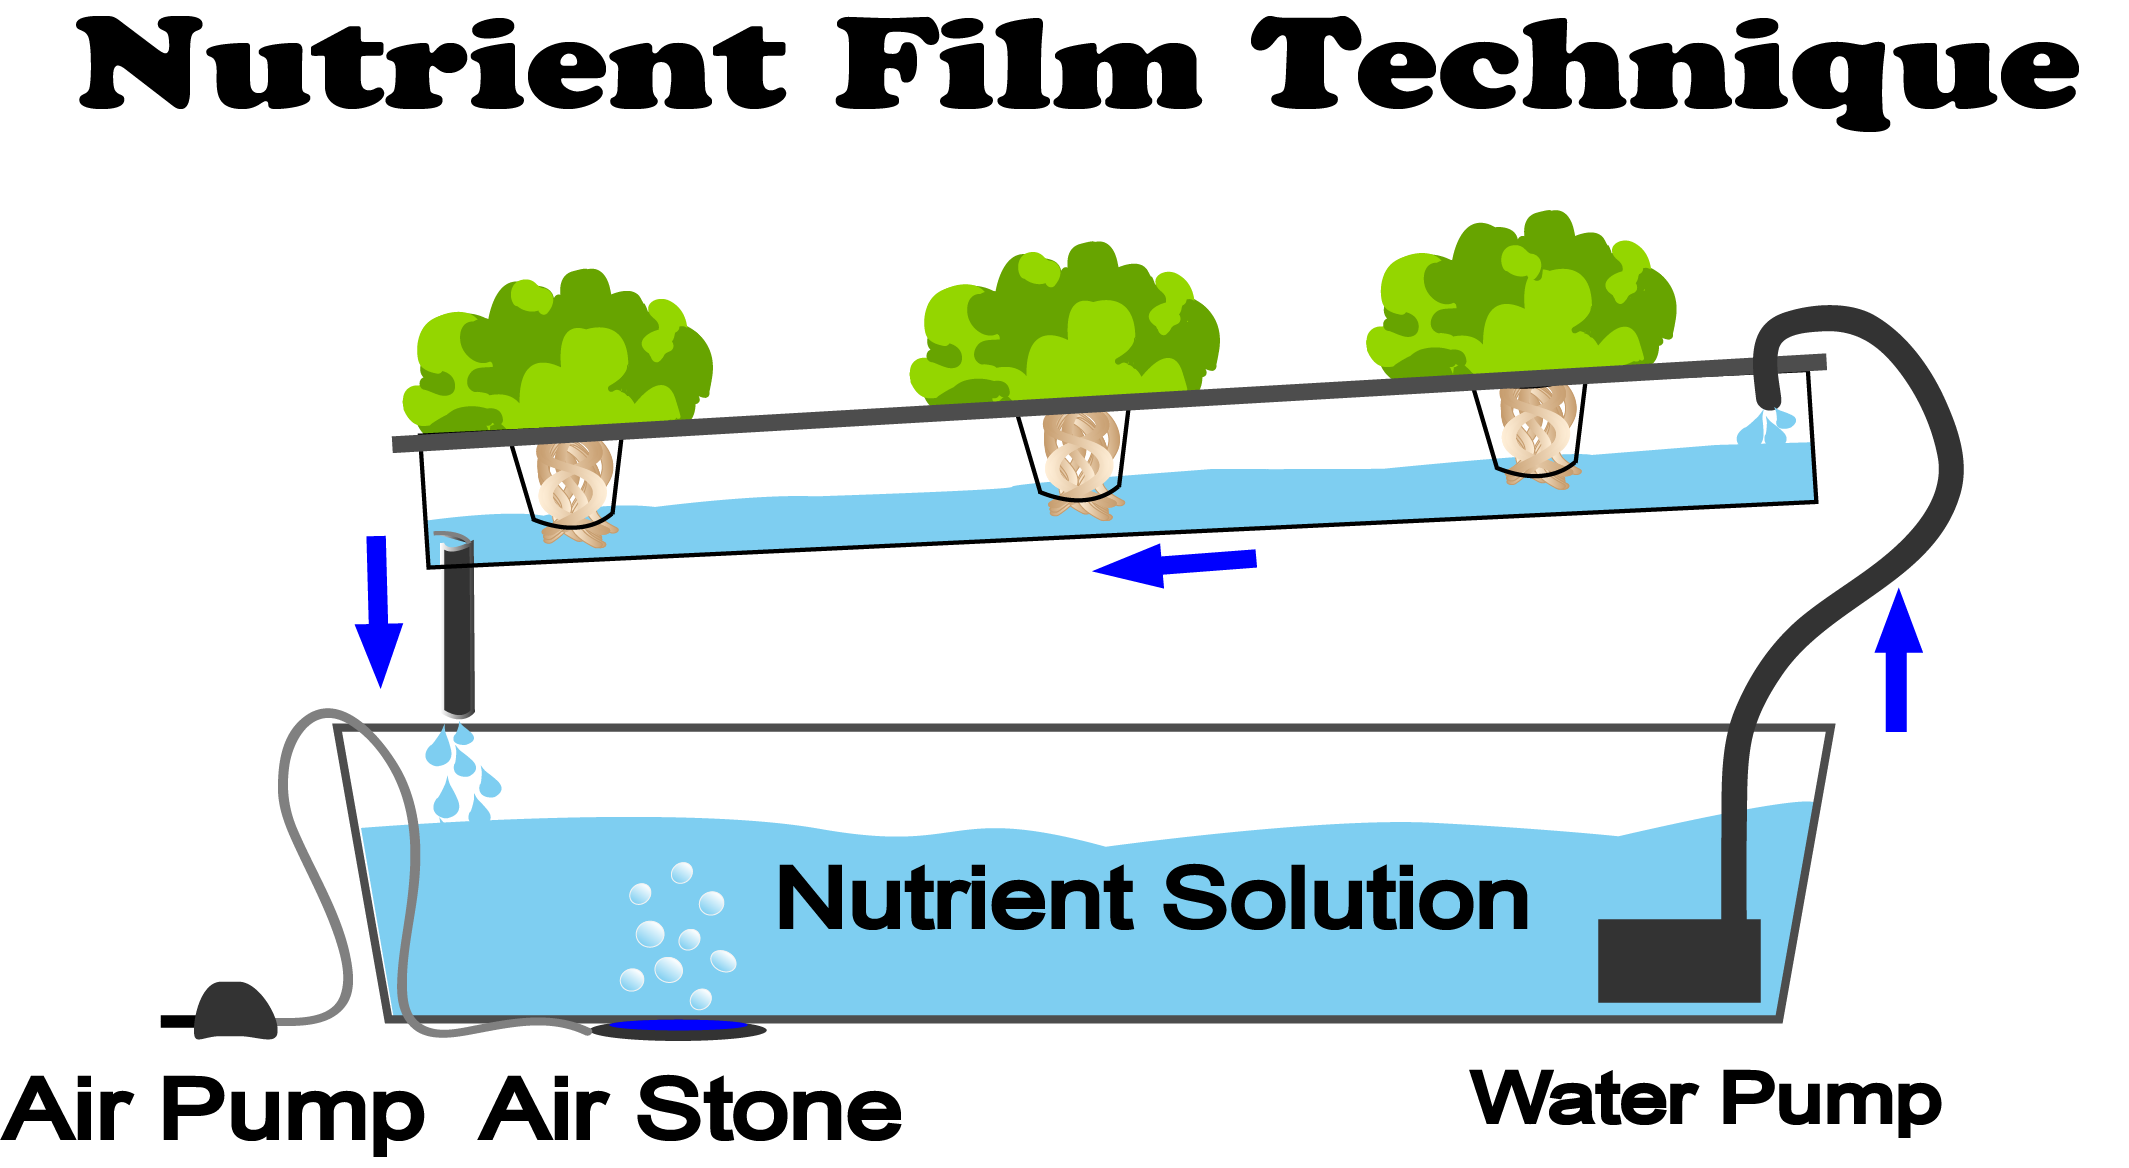 This is a diagram of a Nutrient Film Technique (NFT) Hydroponic system